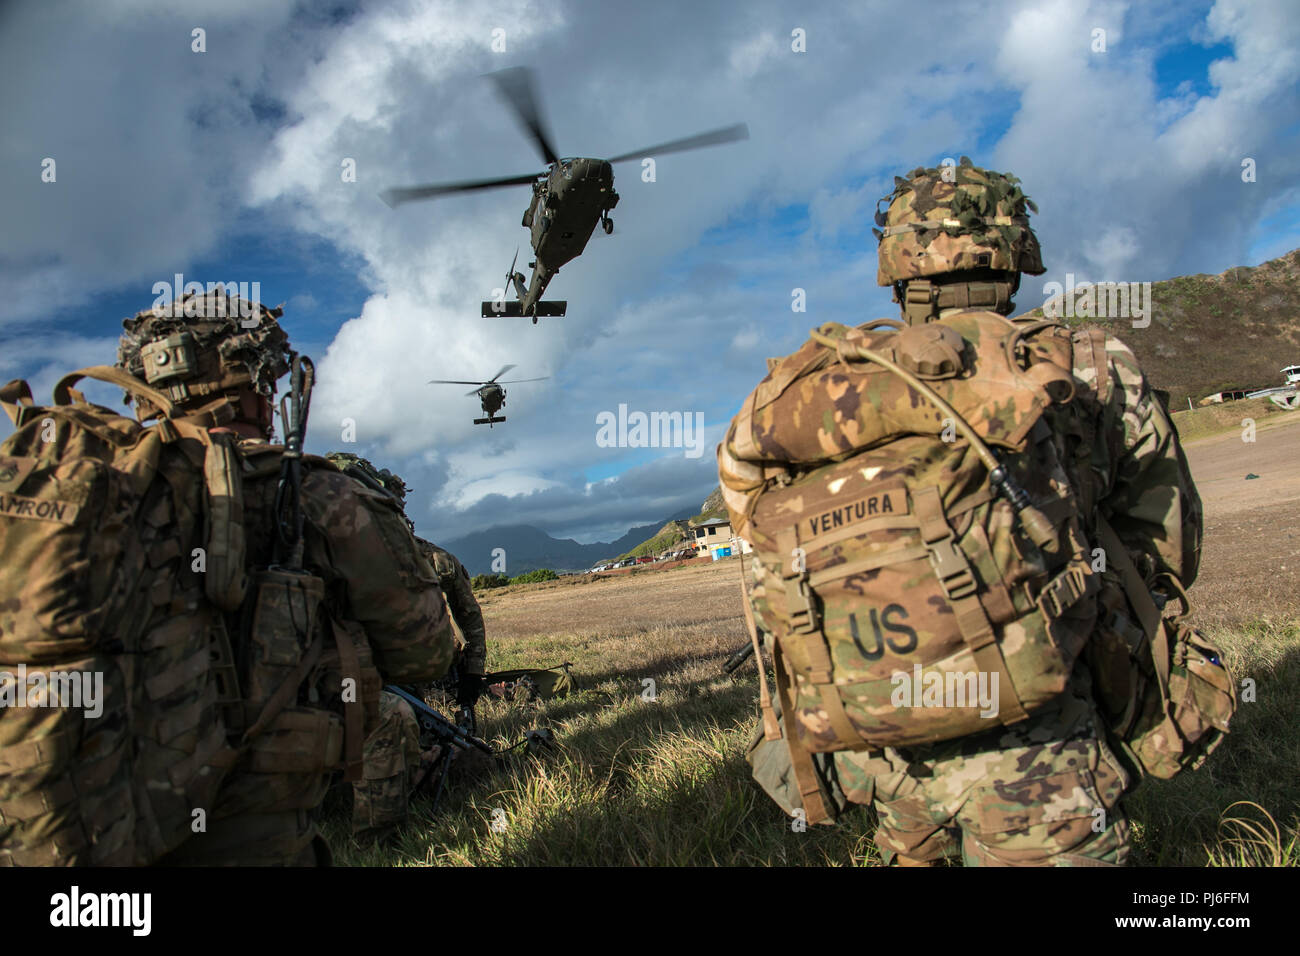 """September 4, 2018 - Marine Corps Base Hawaii, Hawaii, United States - U.S. Army Soldiers assigned to Charlie Co., 1st Battalion, 27th Infantry Regiment """"Wolfhounds"""", 2nd Infantry Brigade Combat Team, 25th Infantry Division, wait for medical evacuation UH-60 Black Hawk helicopters during an air assault training mission on Marine Corps Base Hawaii, Kaneohe, Hawaii, Aug. 21, 2018. The exercise maintains combat readiness in preparation for a Joint Readiness Training Center rotation later this year. (U.S. Army photo by 1st Lt. Ryan DeBooy) www.dvidshub.net U.S. Department of Defense via Stock Photo"""